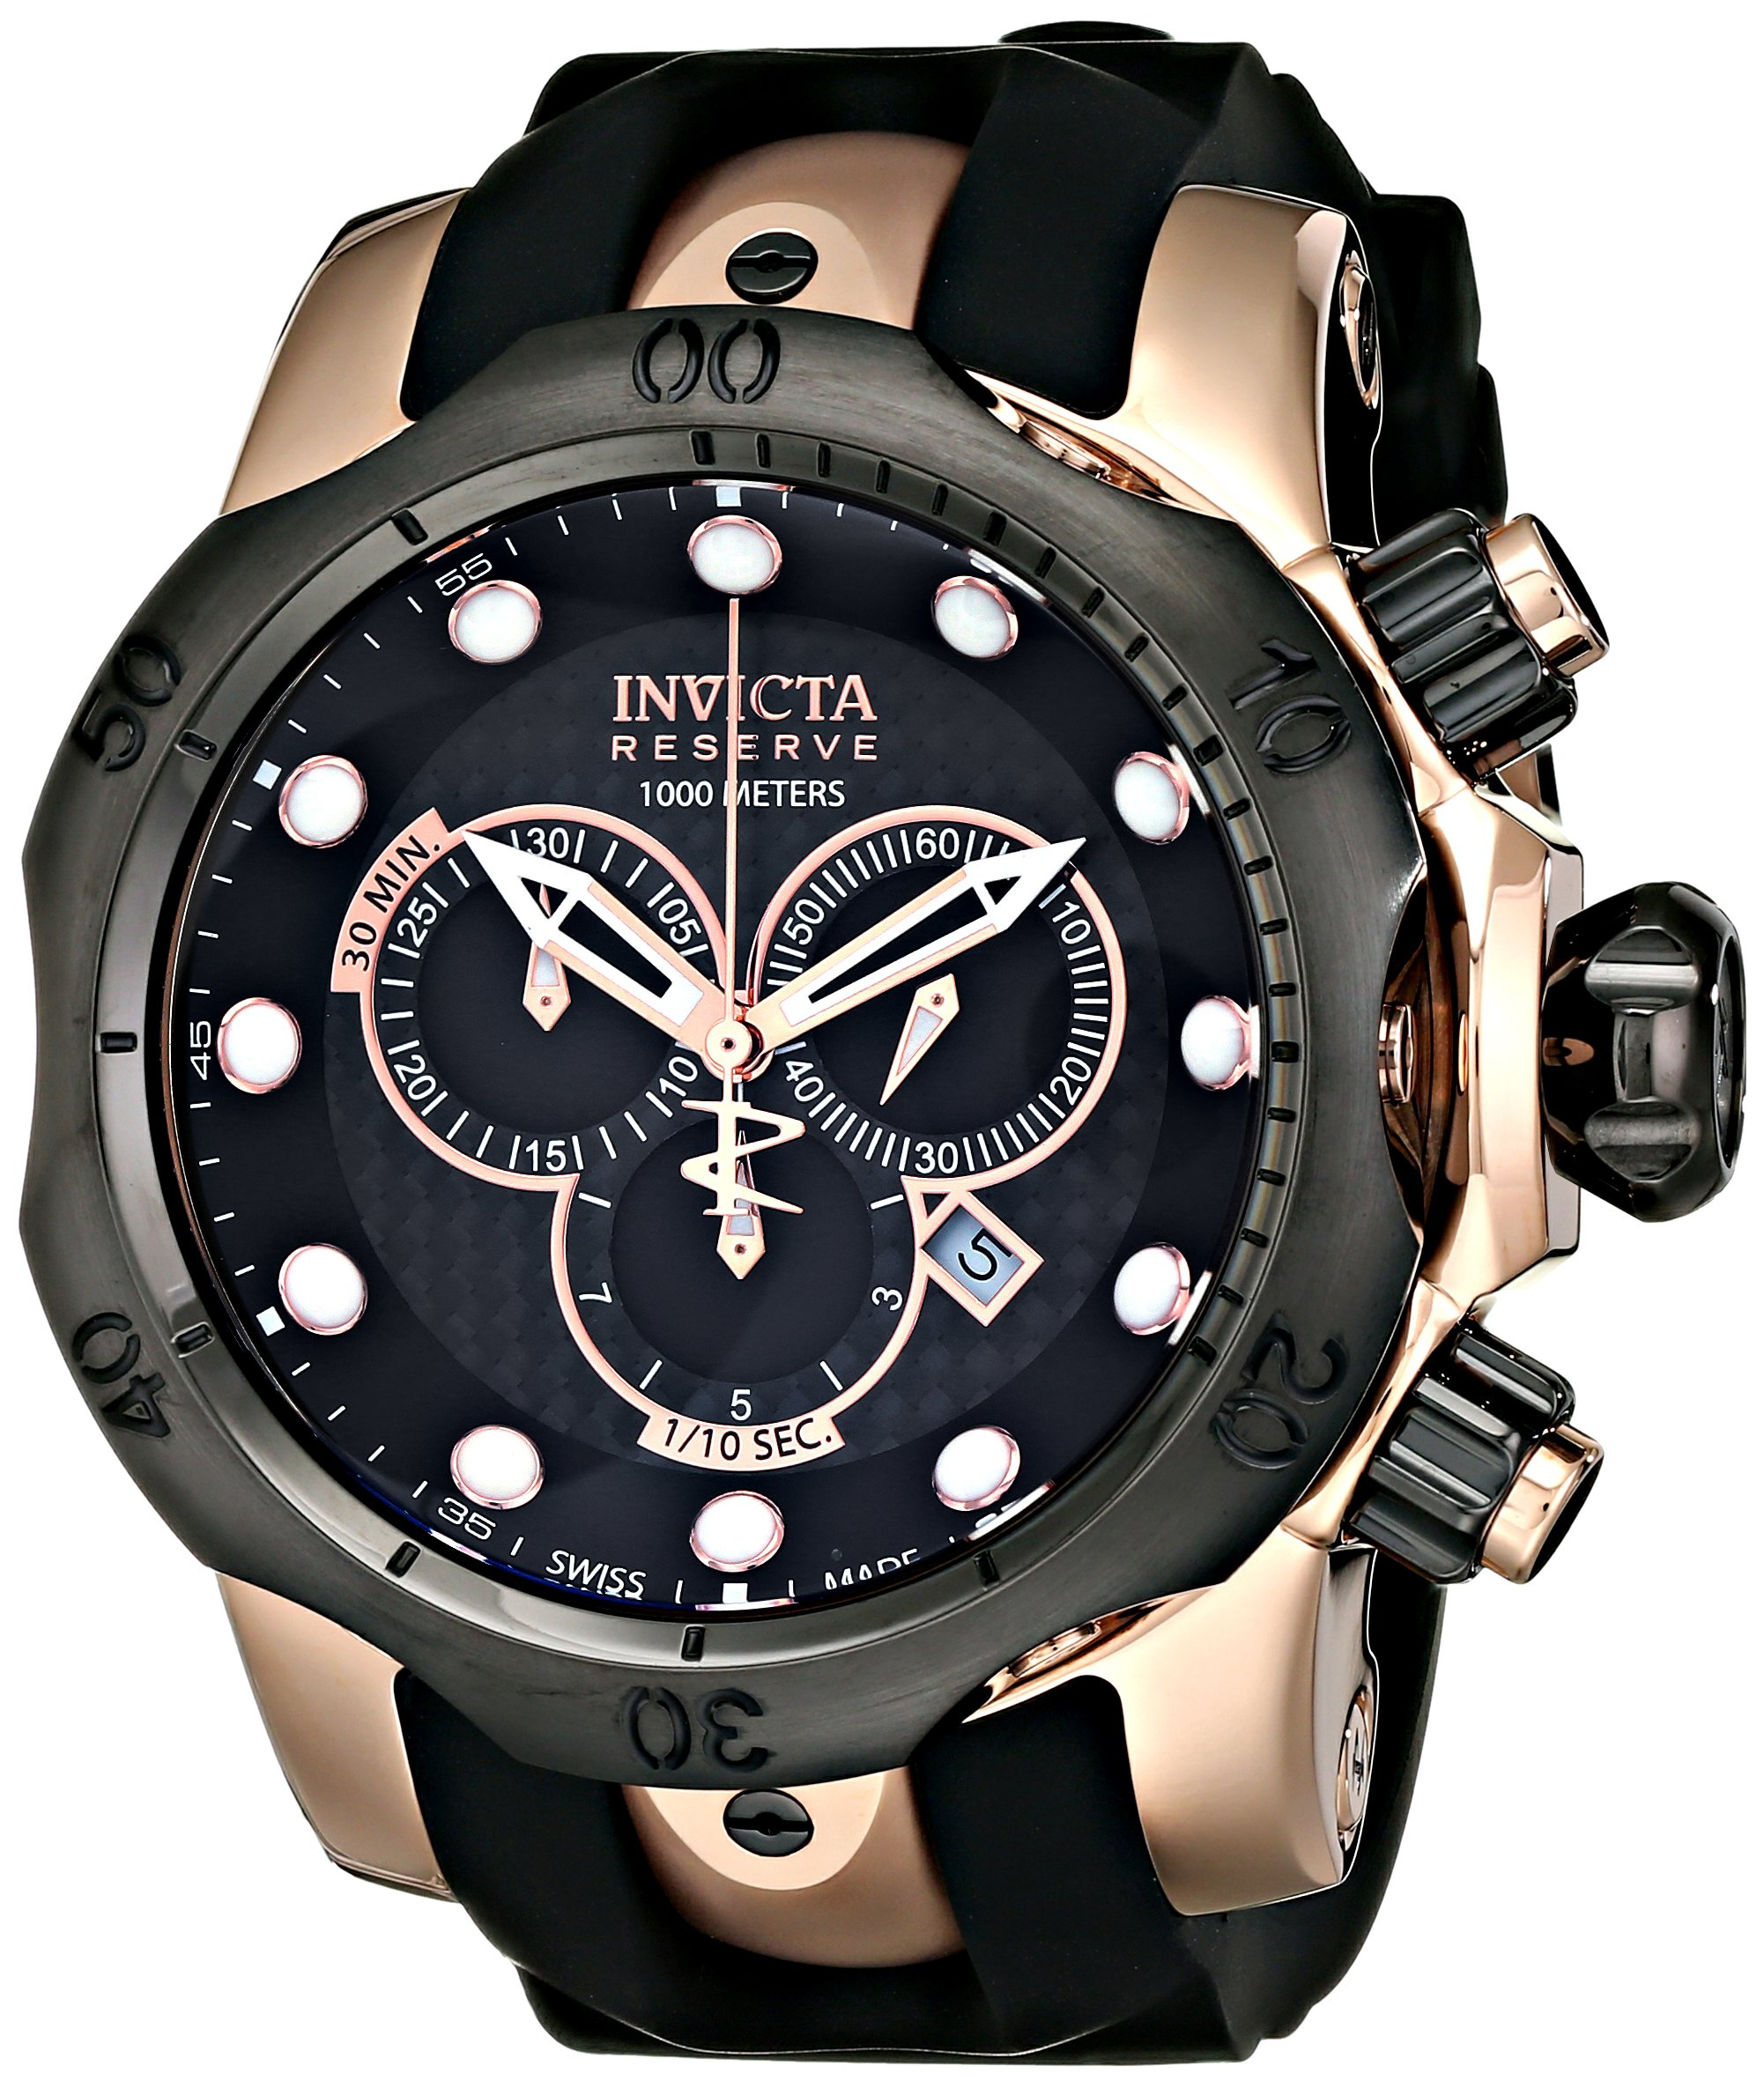 Invicta Men's 0361 Reserve Collection Venom Chronograph 18k Rose Gold-Plated Stainless Steel Watch by Invicta